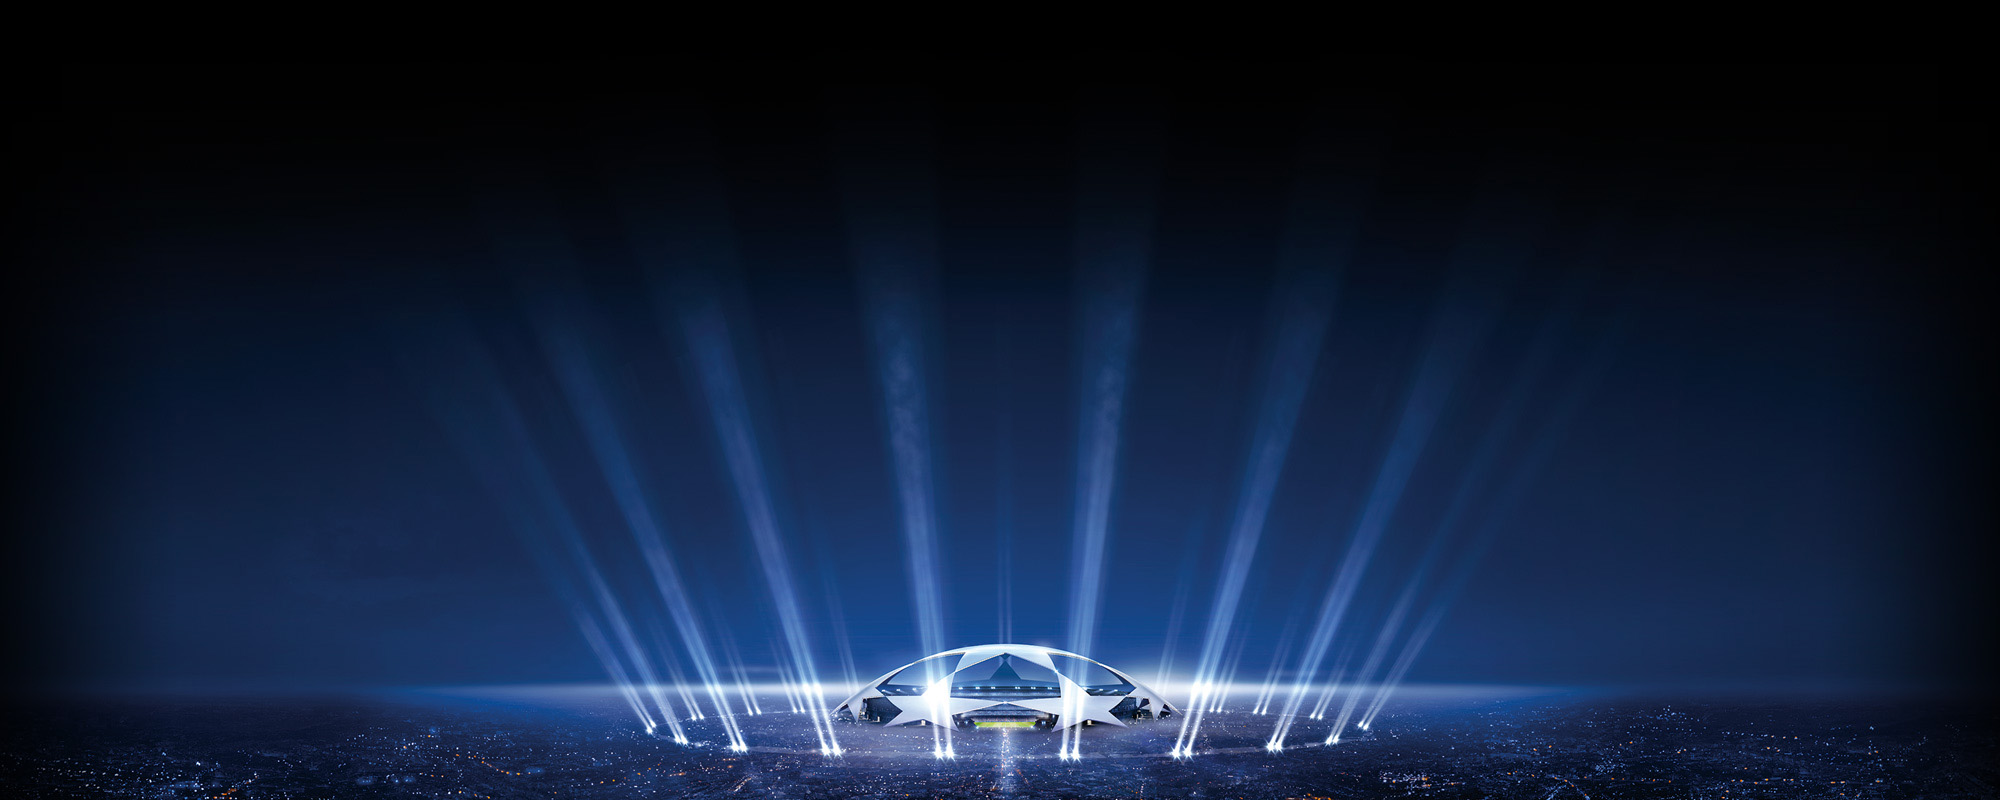 champions league wallpaper for facebook full hd pictures